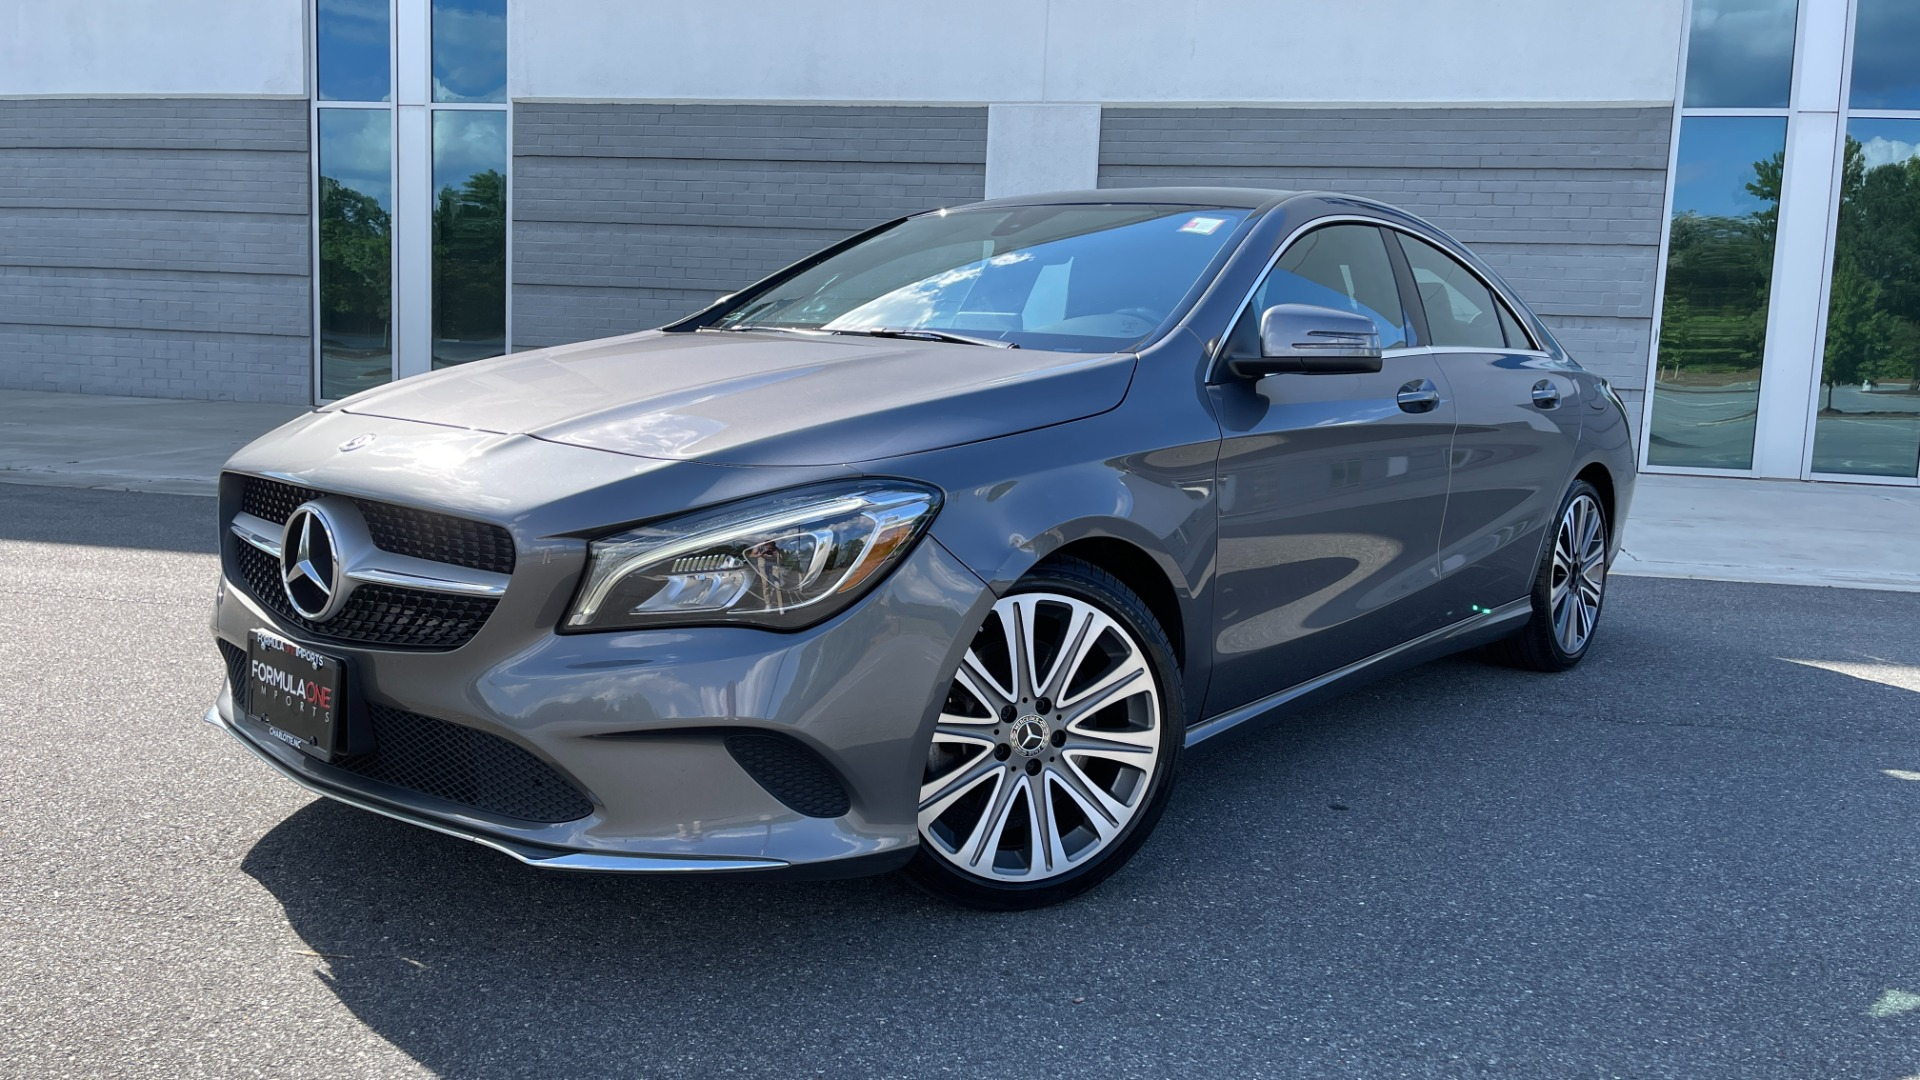 Used 2019 Mercedes-Benz CLA 250 4MATIC PREM & CONV PKG / APPLE / PANO-ROOF / H/K SND / REARVIEW for sale $29,795 at Formula Imports in Charlotte NC 28227 1